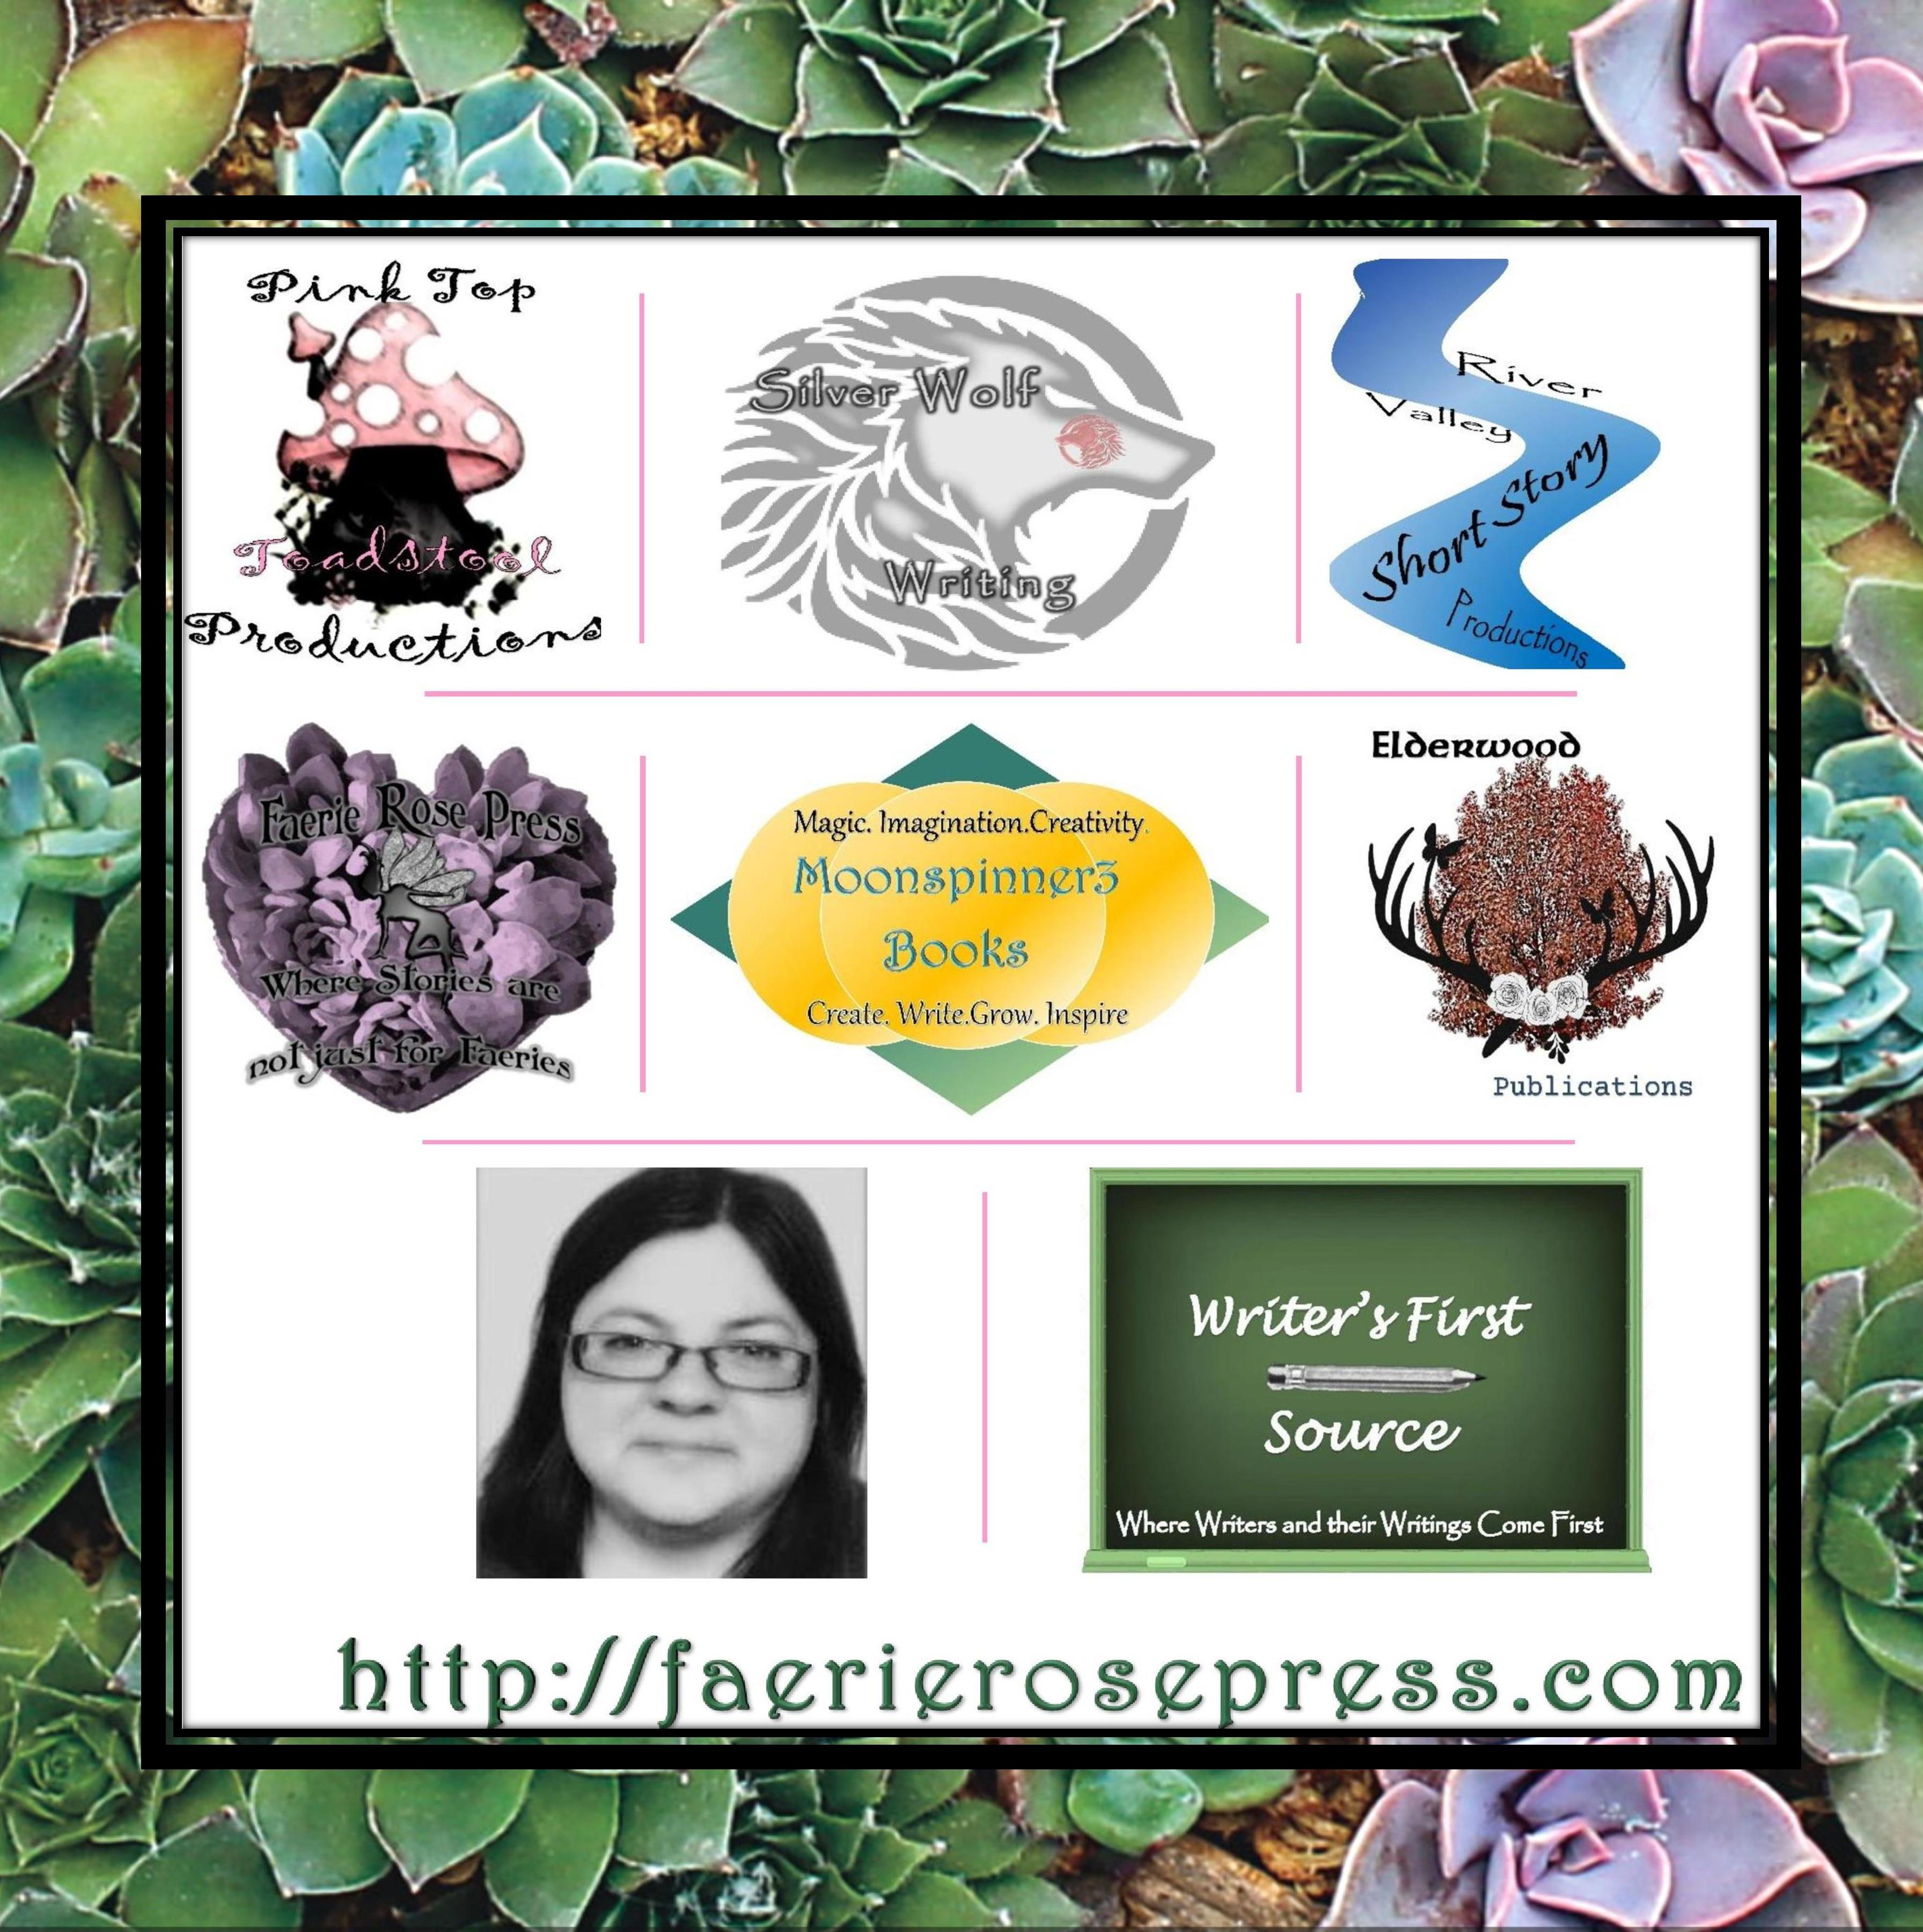 Faerie Rose Press